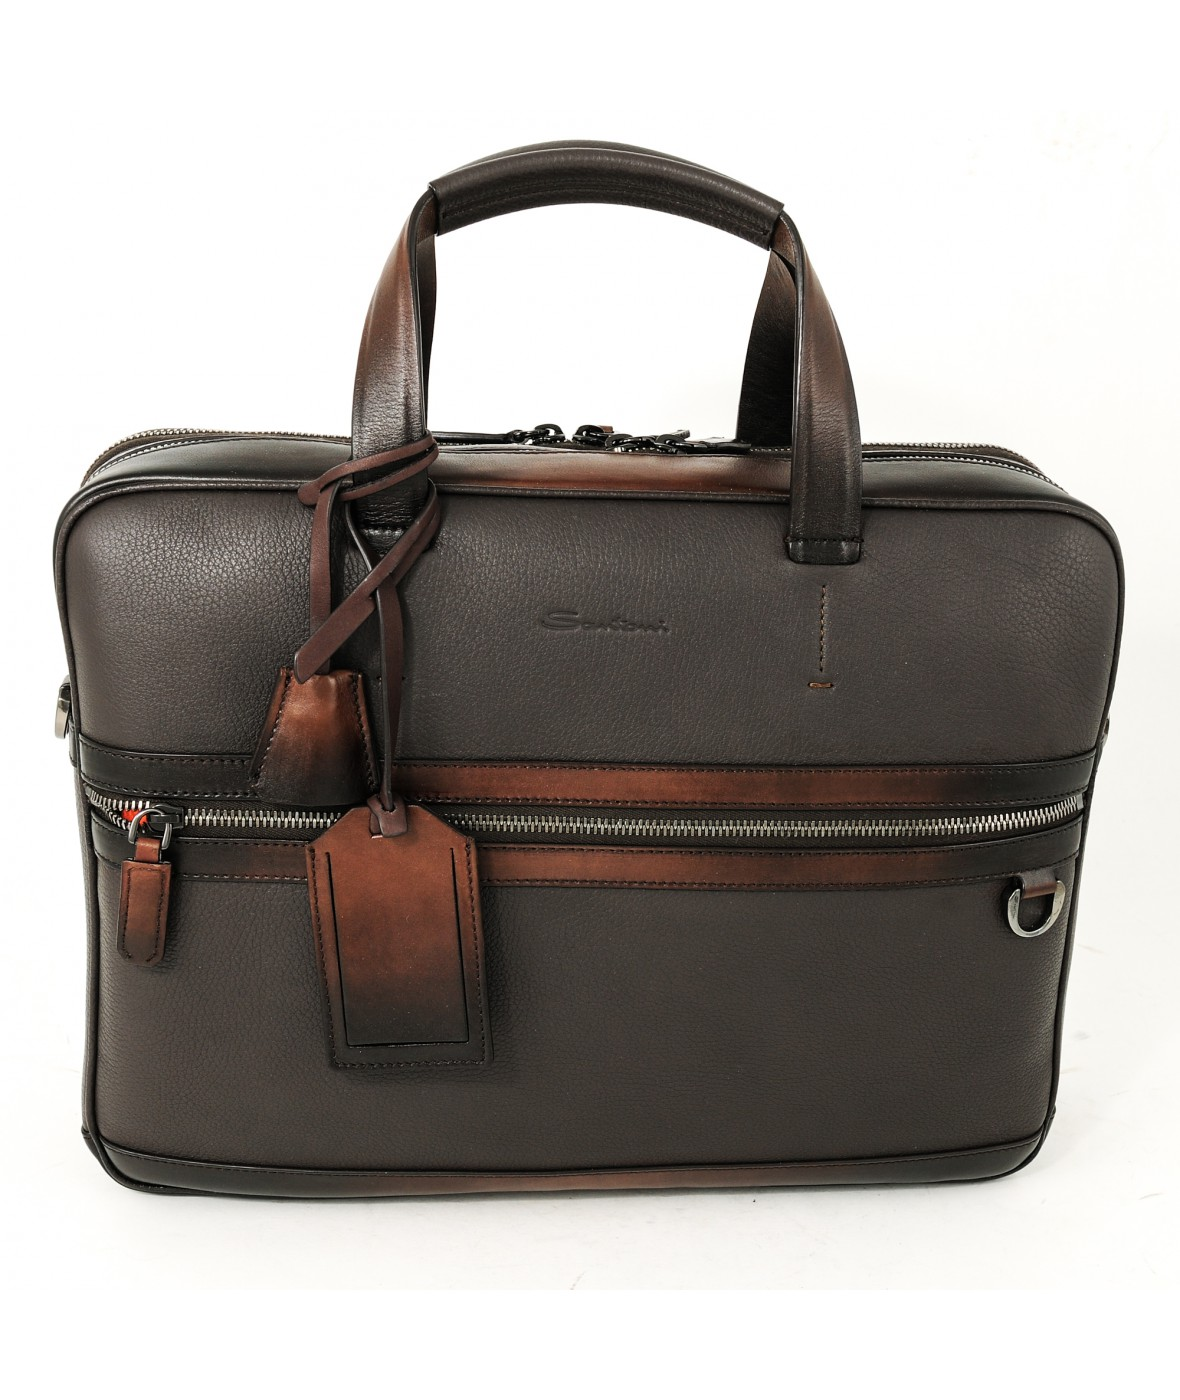 Santoni Laptop Bag (32728)